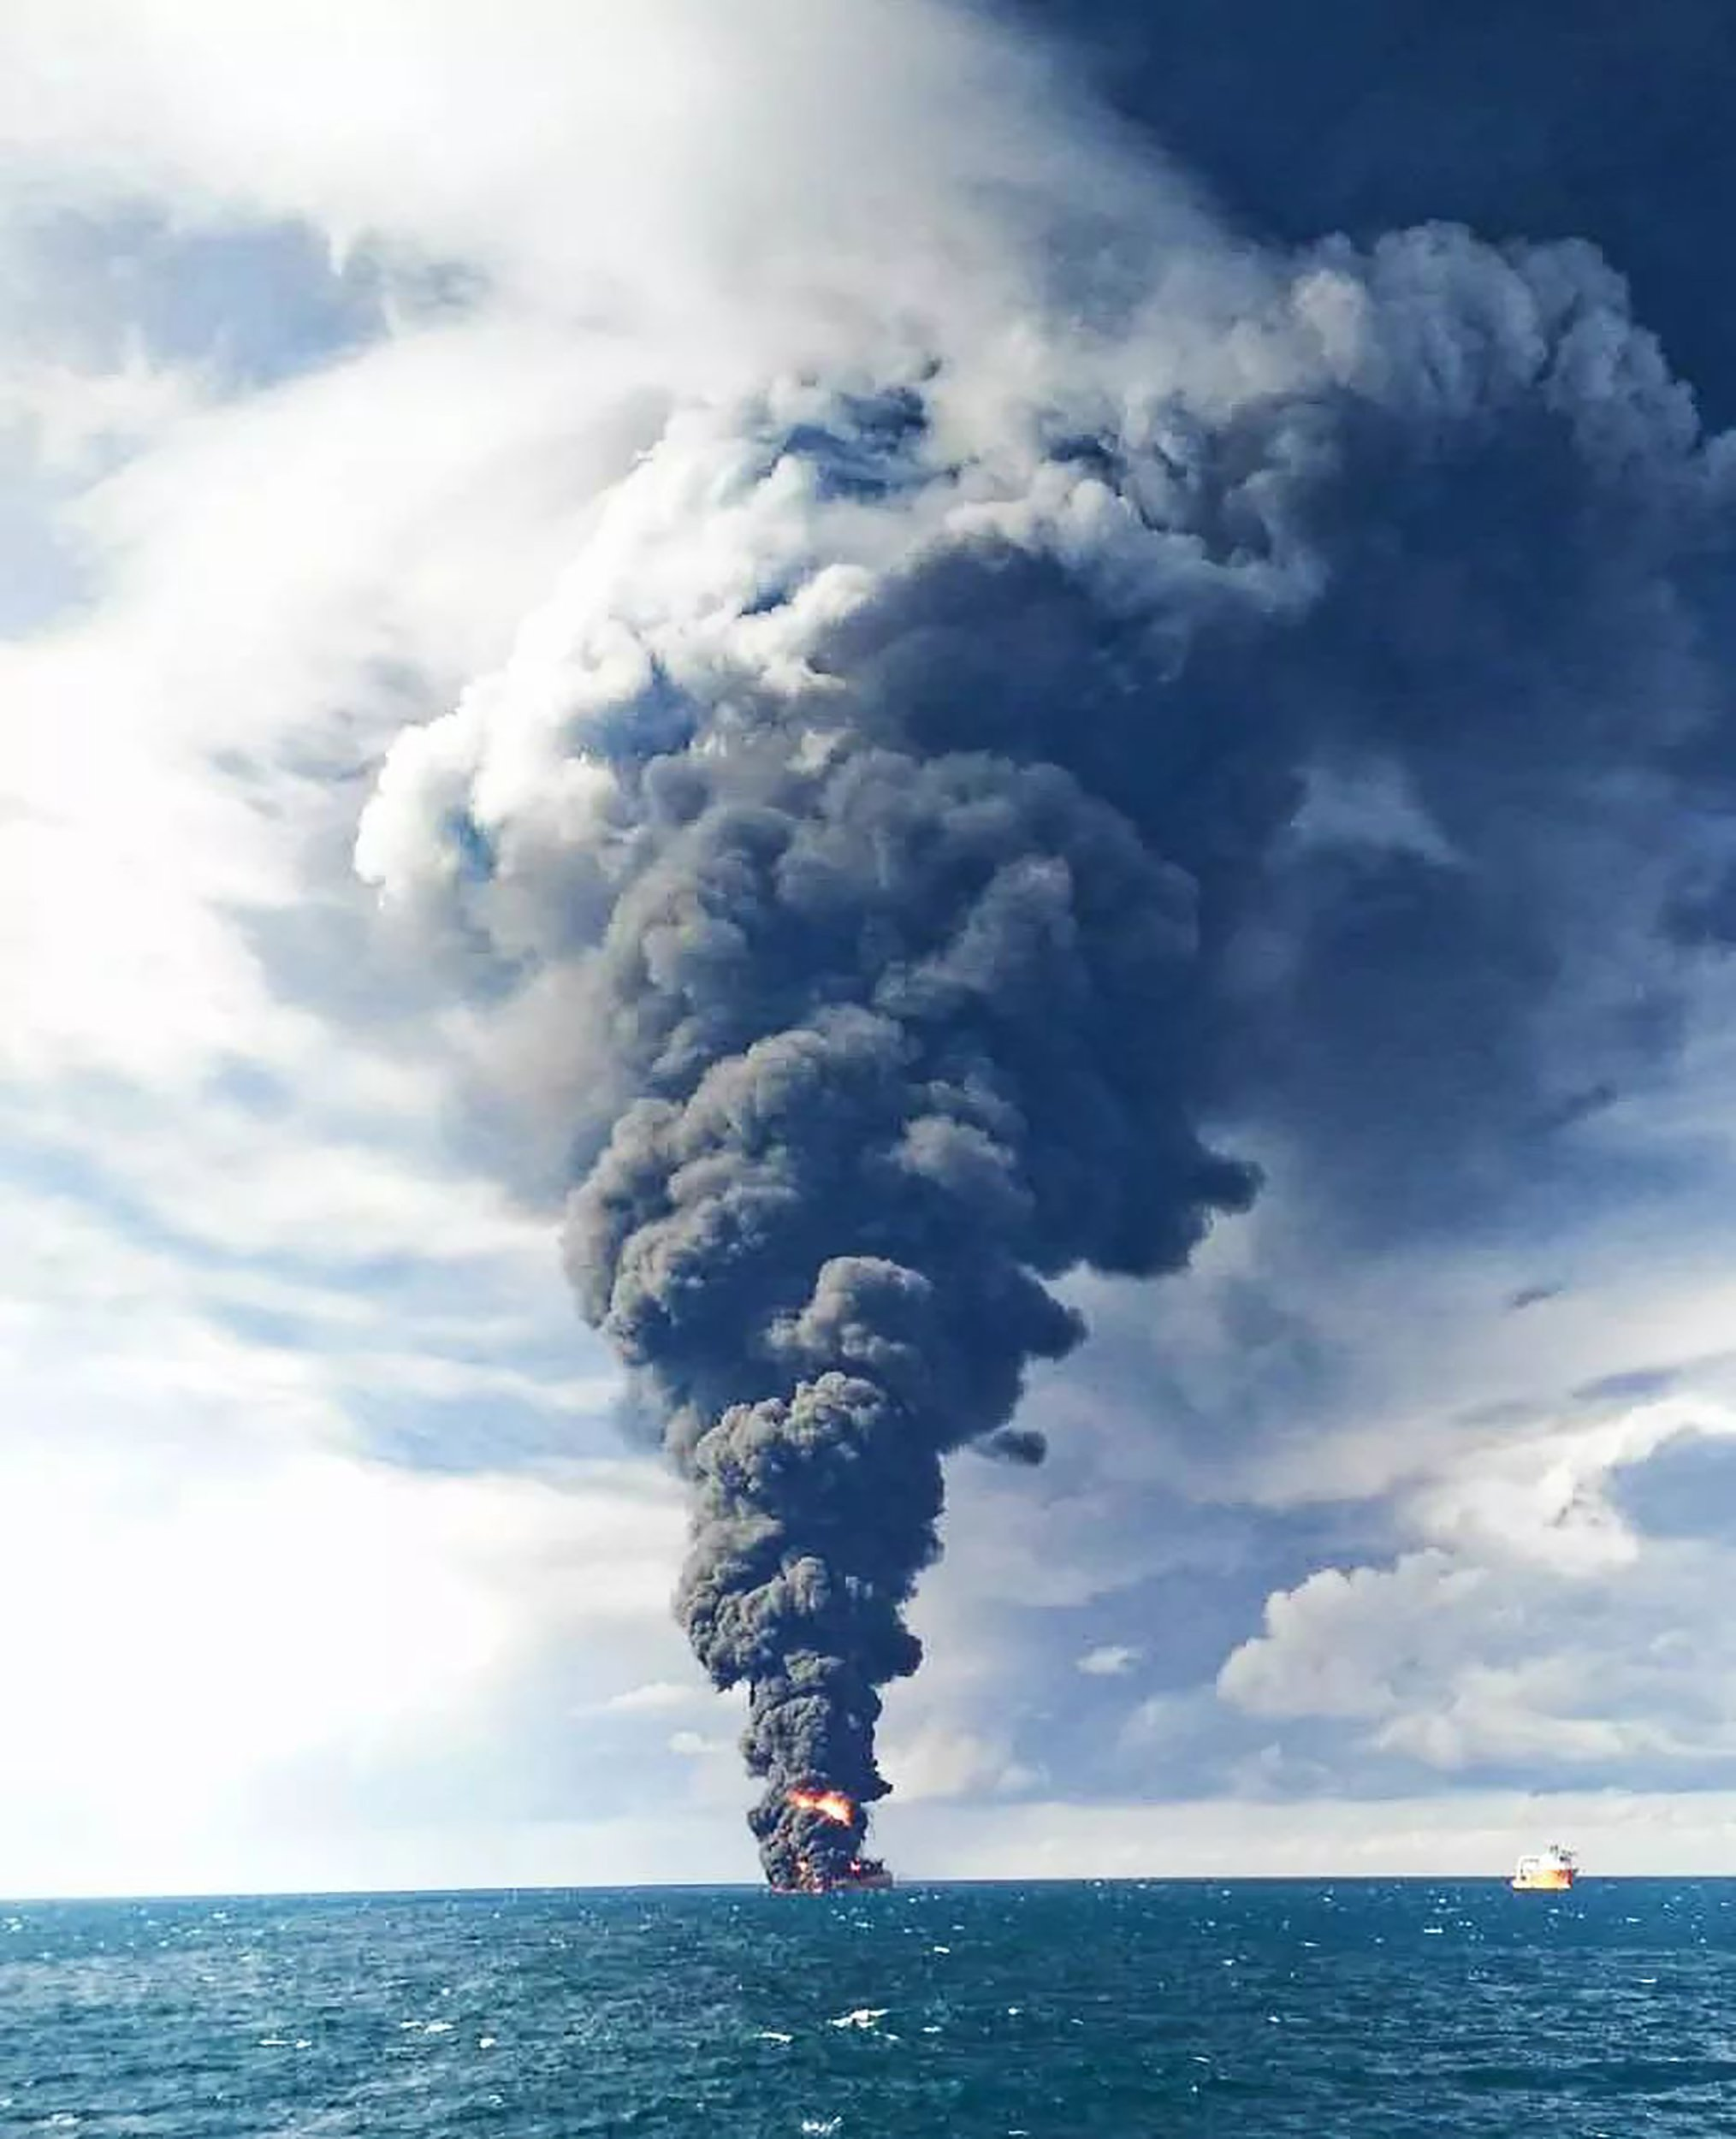 Iranian oil tanker explodes in plume of smoke before finally sinking